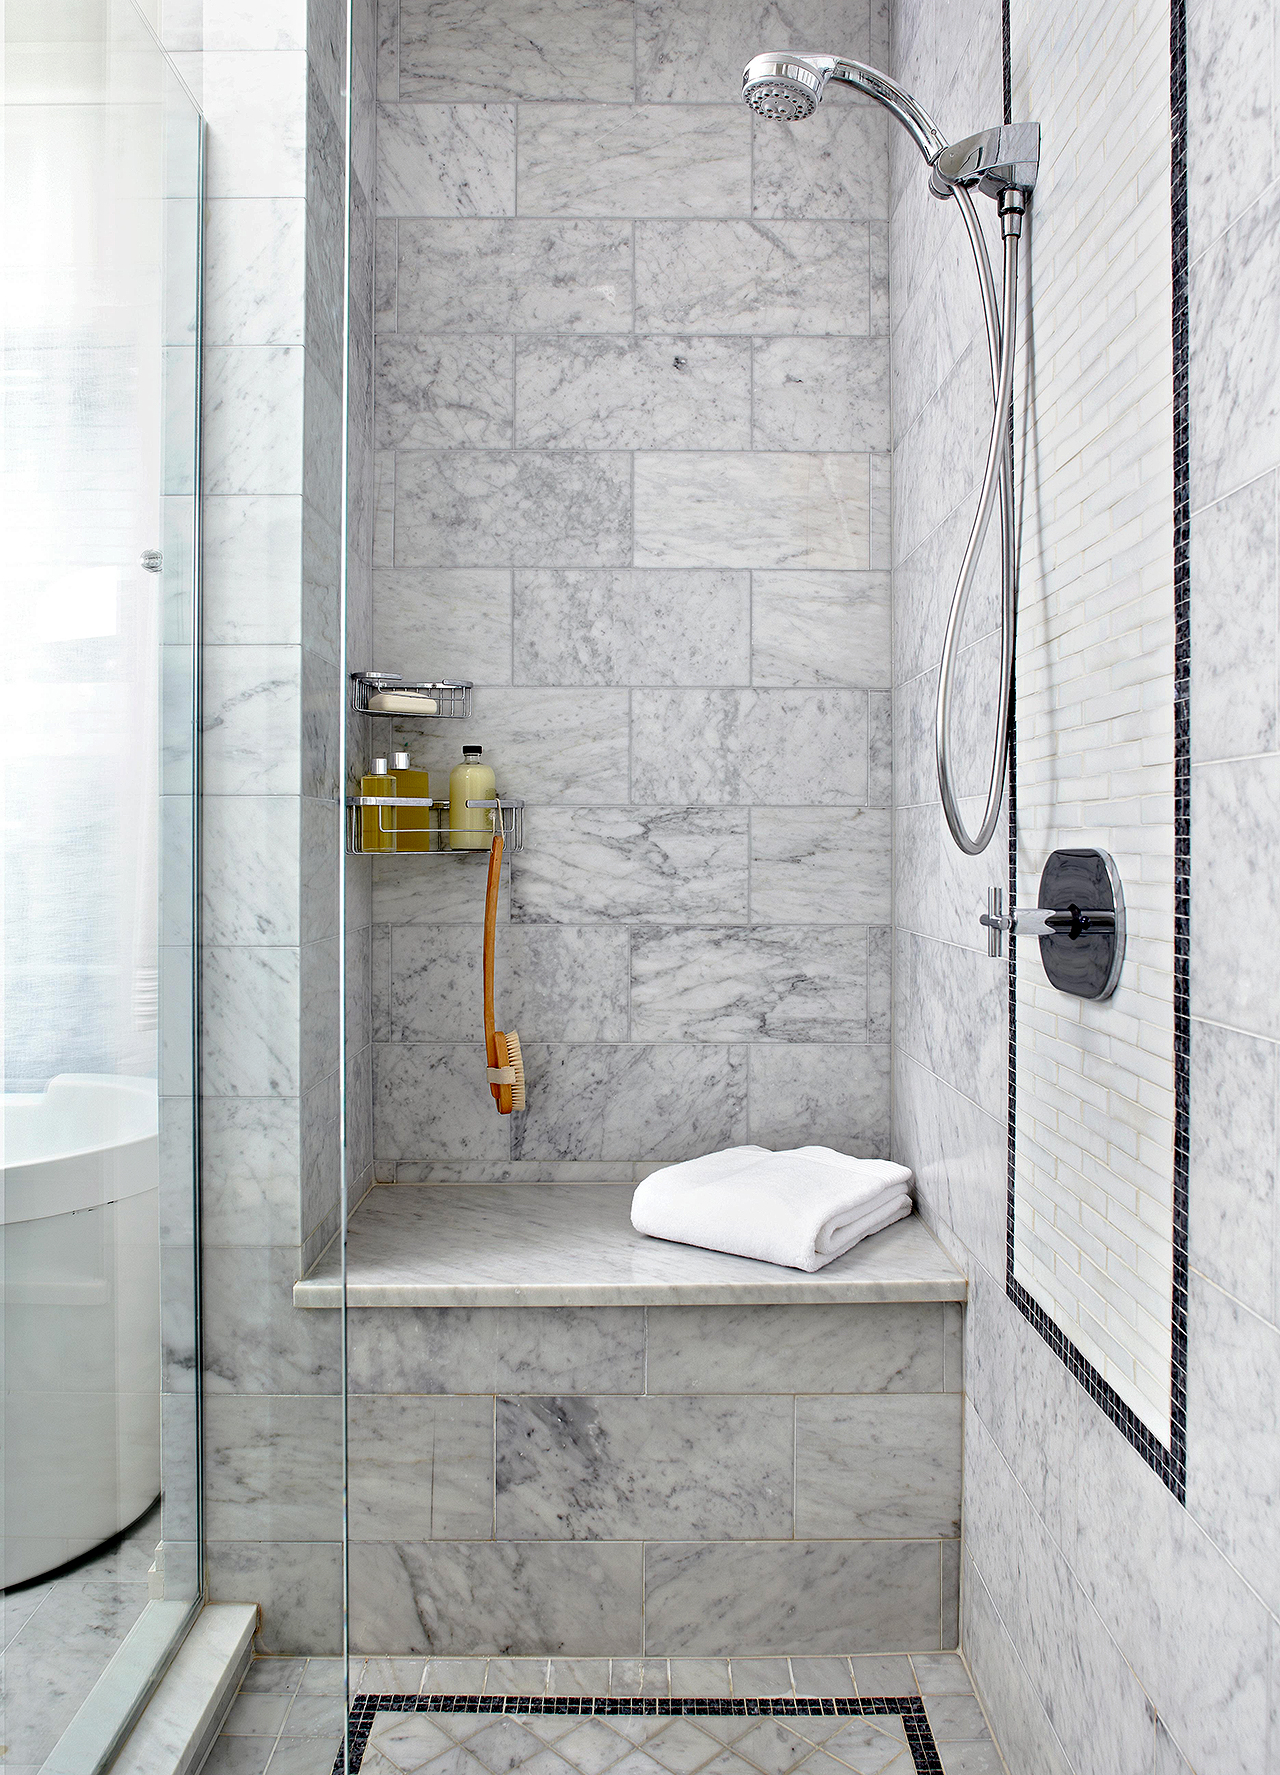 gray tile in shower with built-in bench